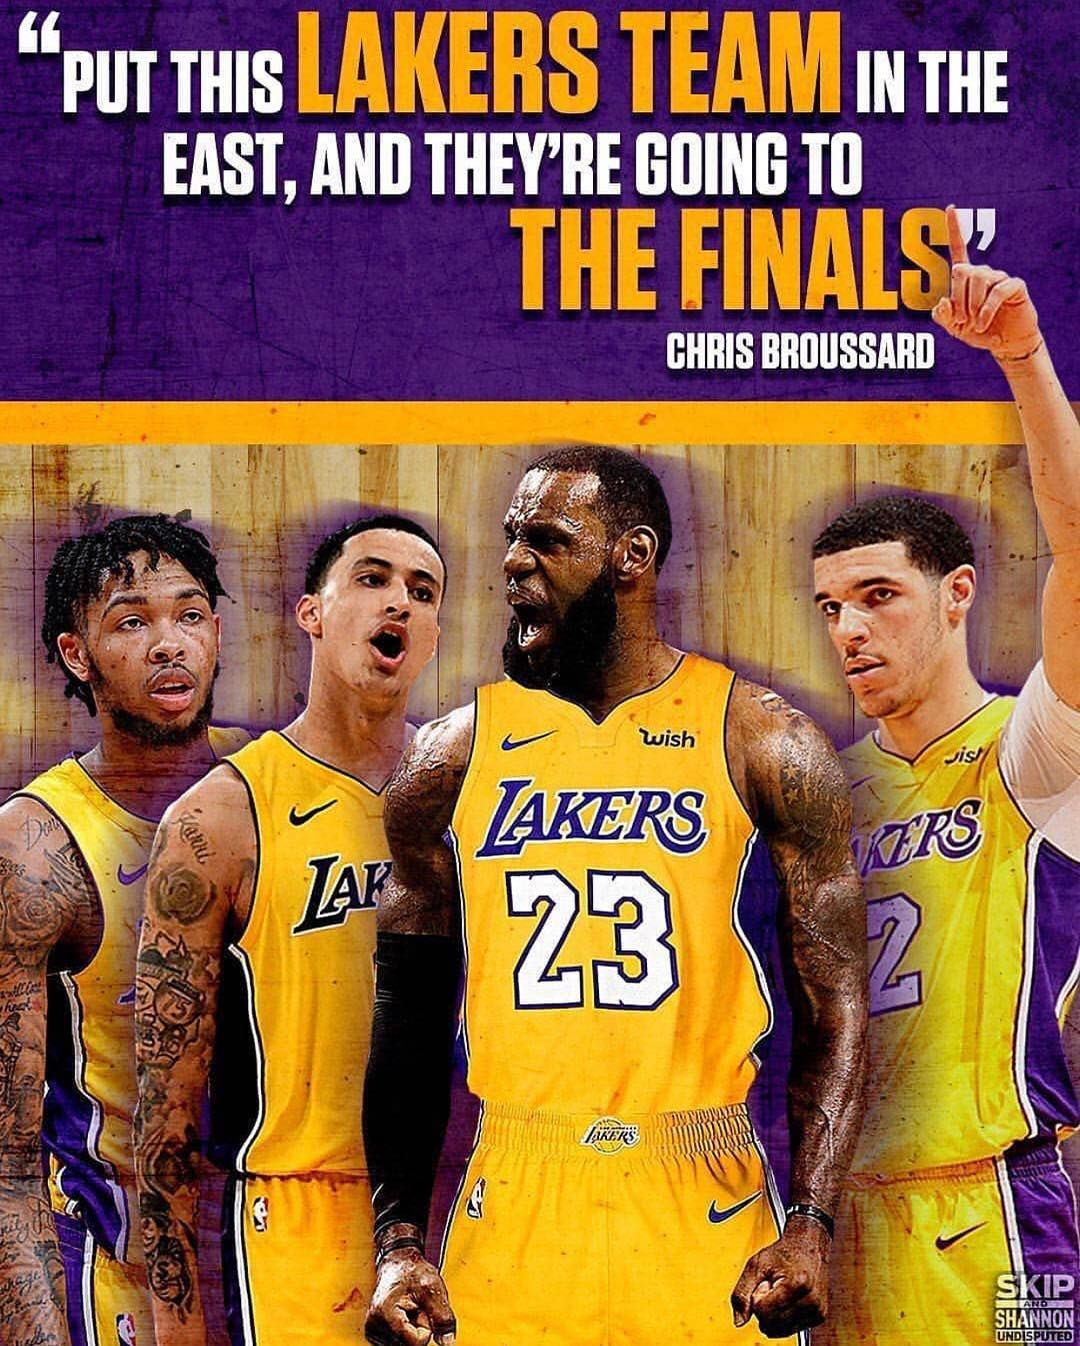 Lakers Training Camp Roster    LeBron James Luol Deng Kentavious Caldwell- Pope Rajon Rondo Lonzo Ball Brandon Ingram Lance Stephenson Moe Wagner Kyle  Kuzma ... b30c79bc3